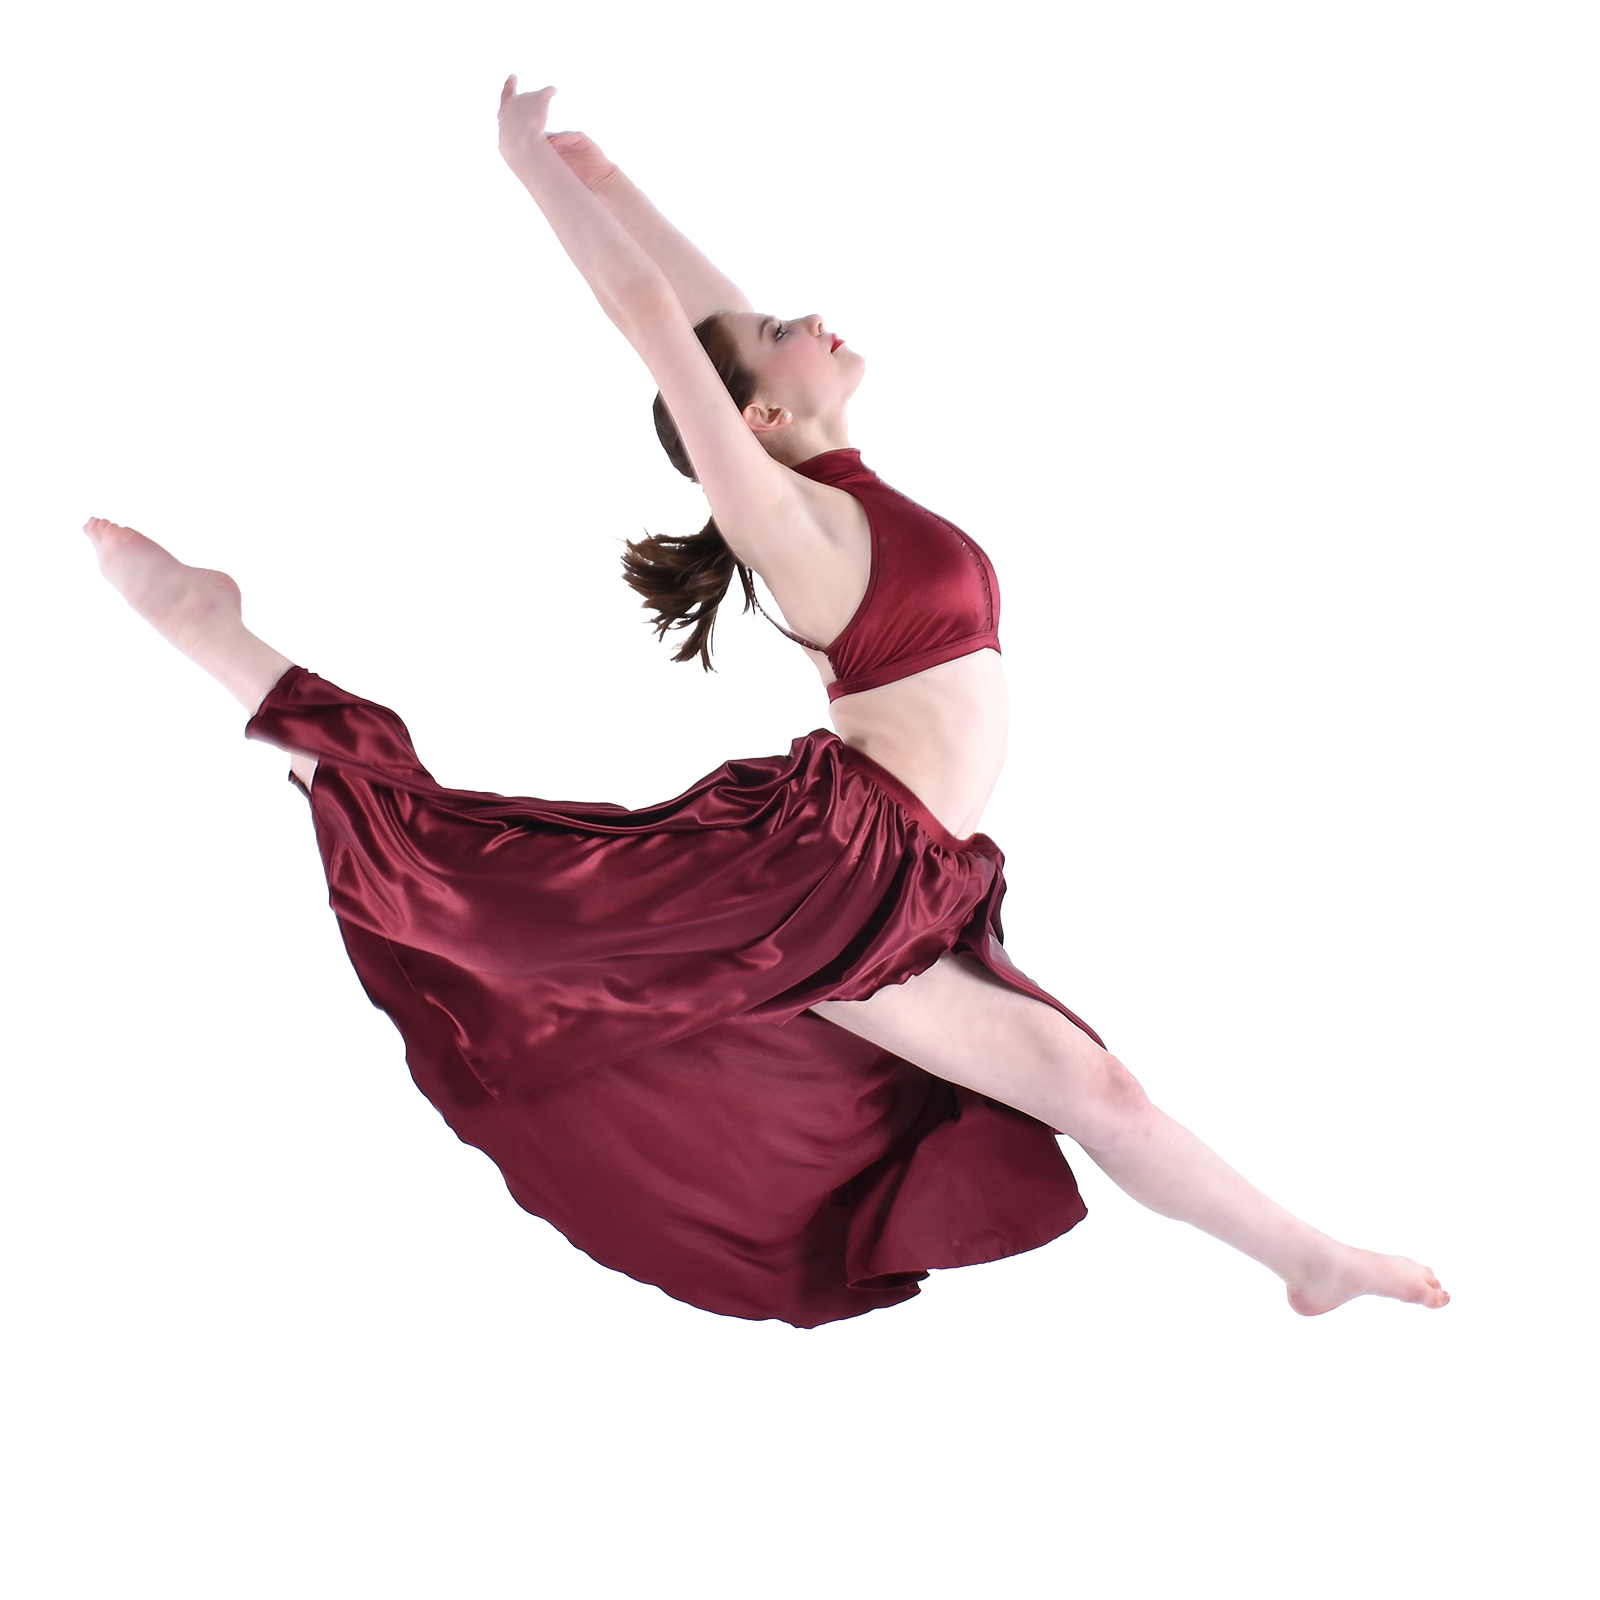 teenage lyrical contemporary dancer jumping